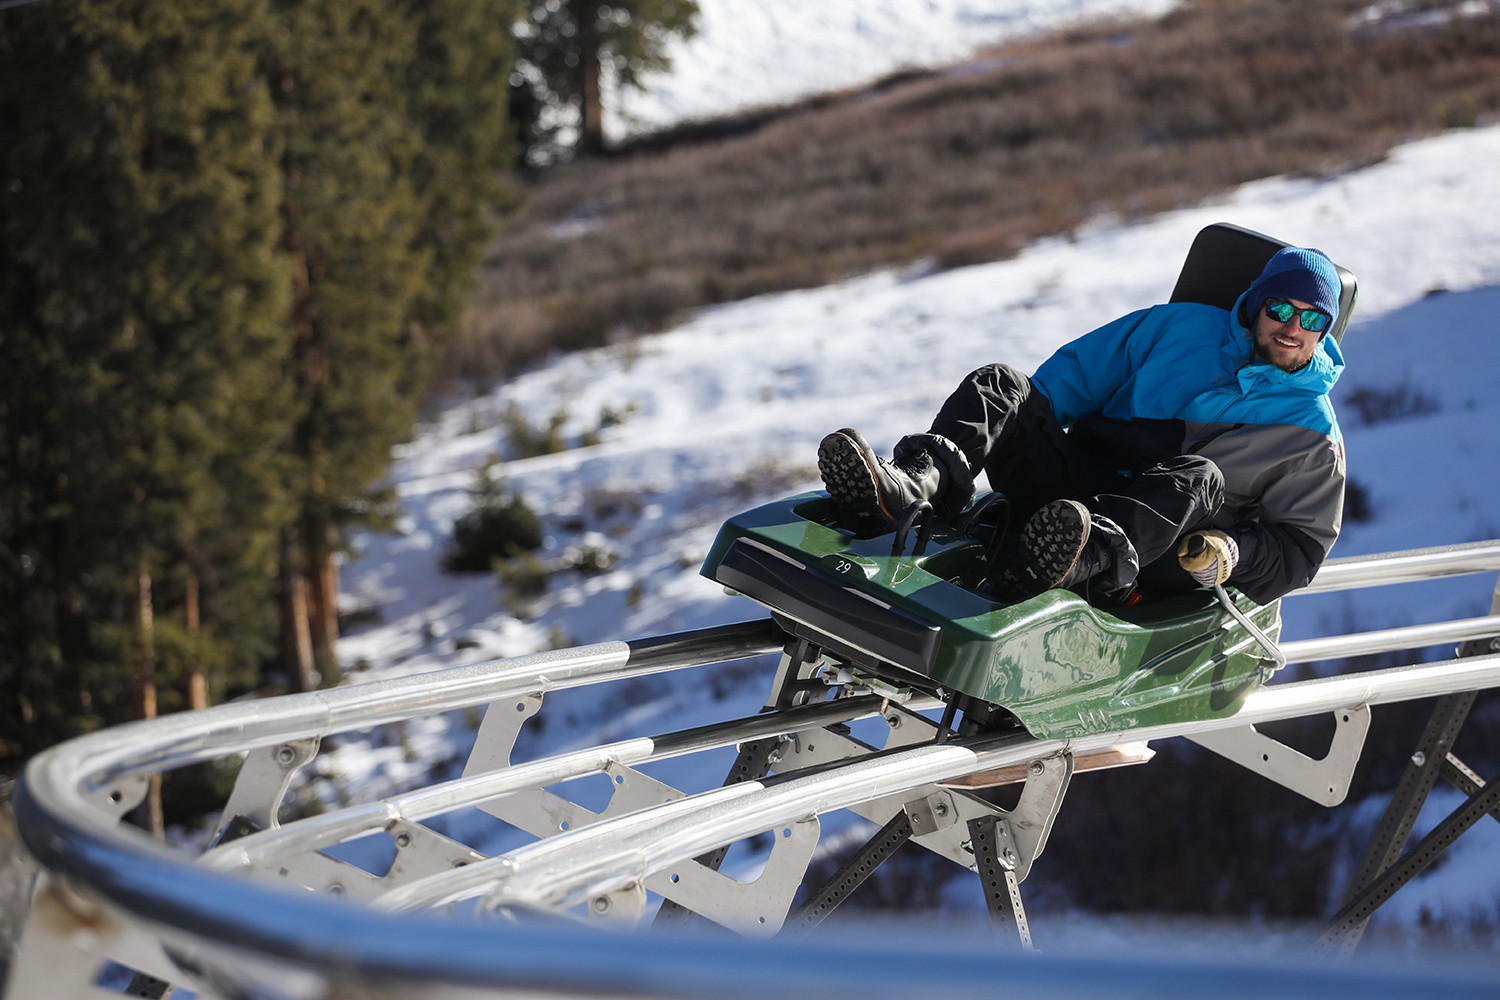 A man riding the Rocky Mountain Coaster at Copper Mountain Resort in Colorado